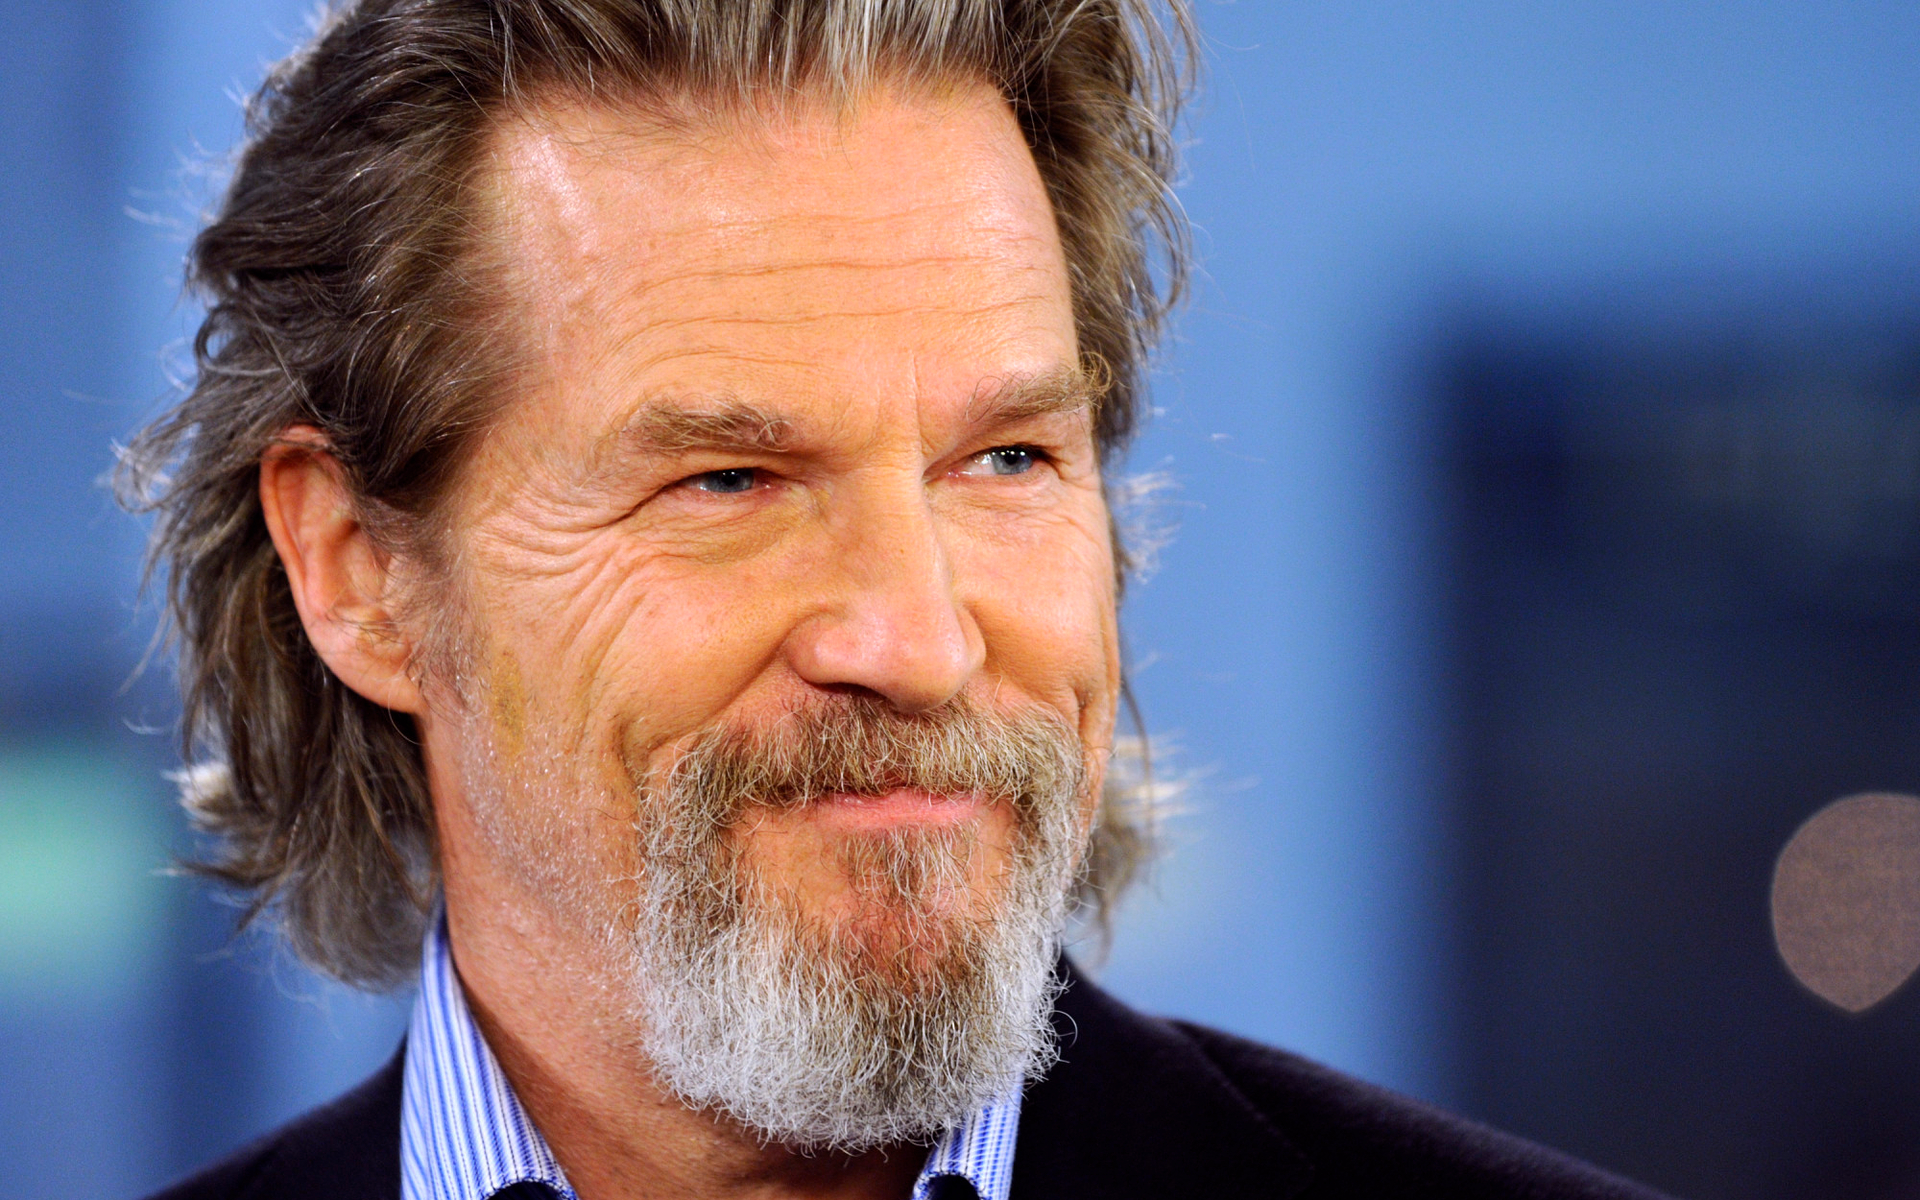 Jeff Bridges HD Wallpaper Background Image 1920x1200 ID 1920x1200